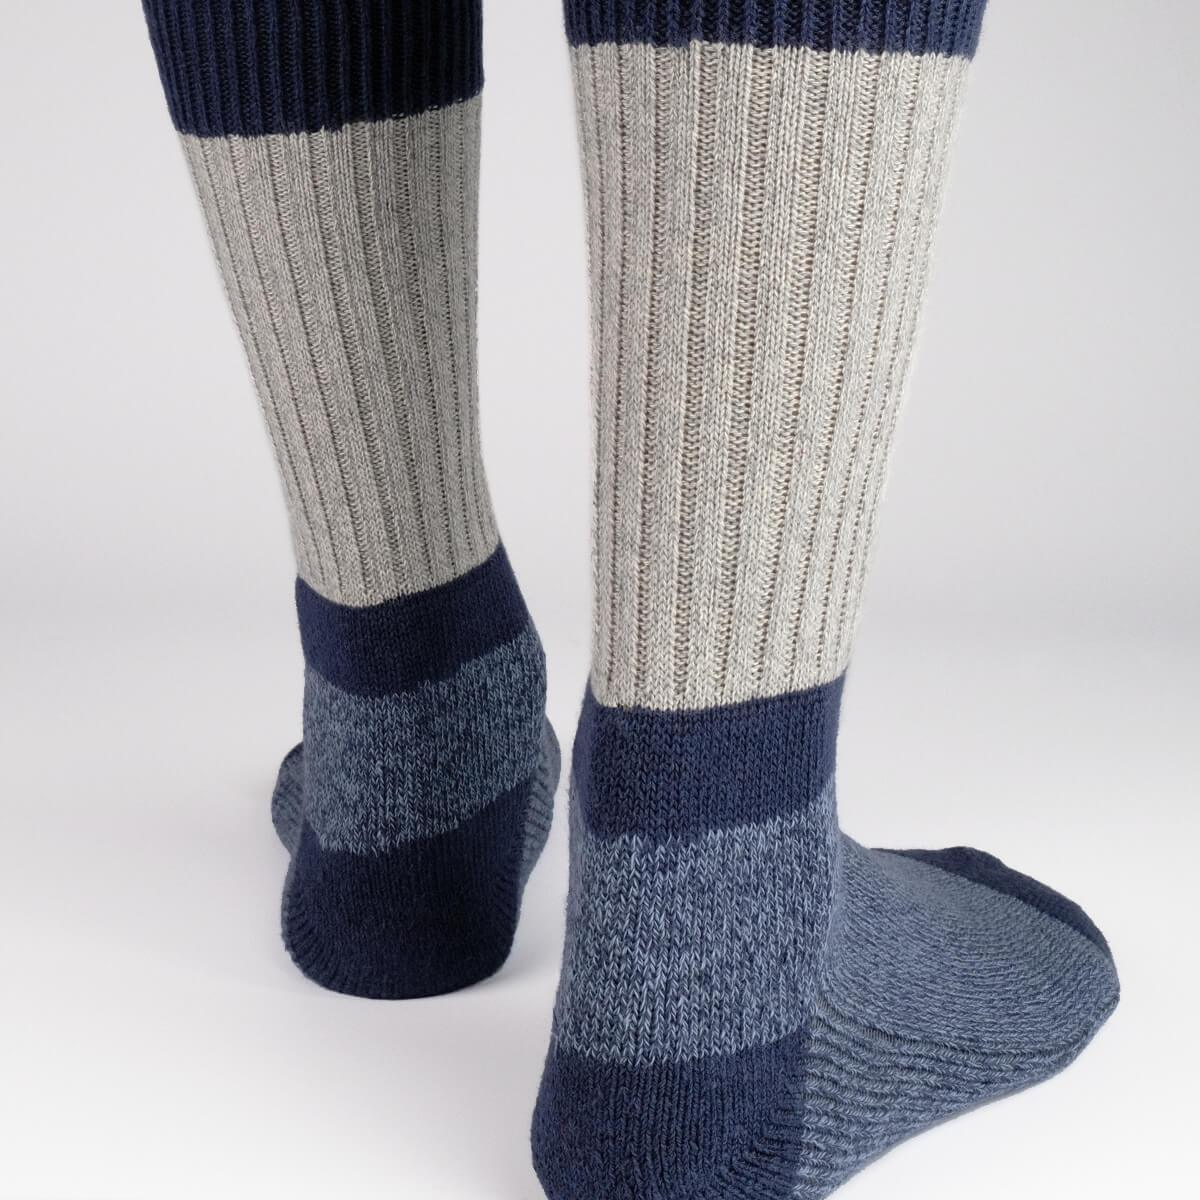 Get The Boot Duo Socks - Blue - Mens Socks | Etiquette Clothiers Global Official